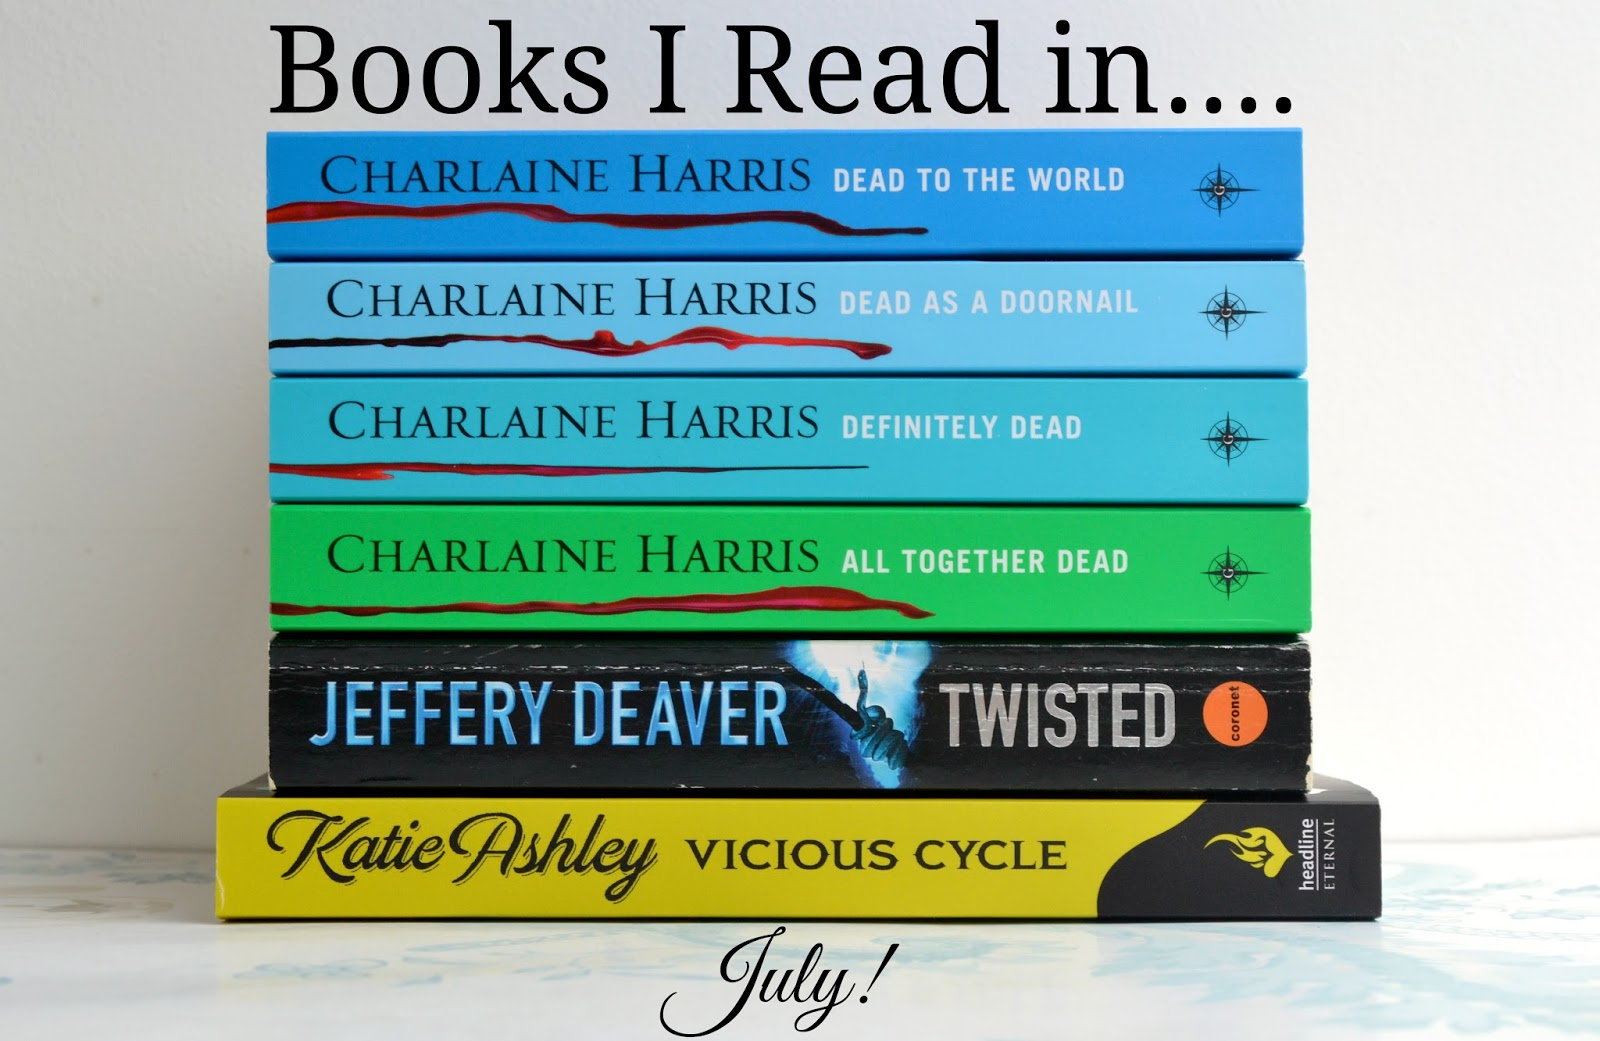 Pile of books including Dead to the World, Dead as a Doornail, Definitely Dead and All Together Dead by Charlaine Harris, Twisted by Jeffery Deaver and Vicious Cycle by Katie Ashley.